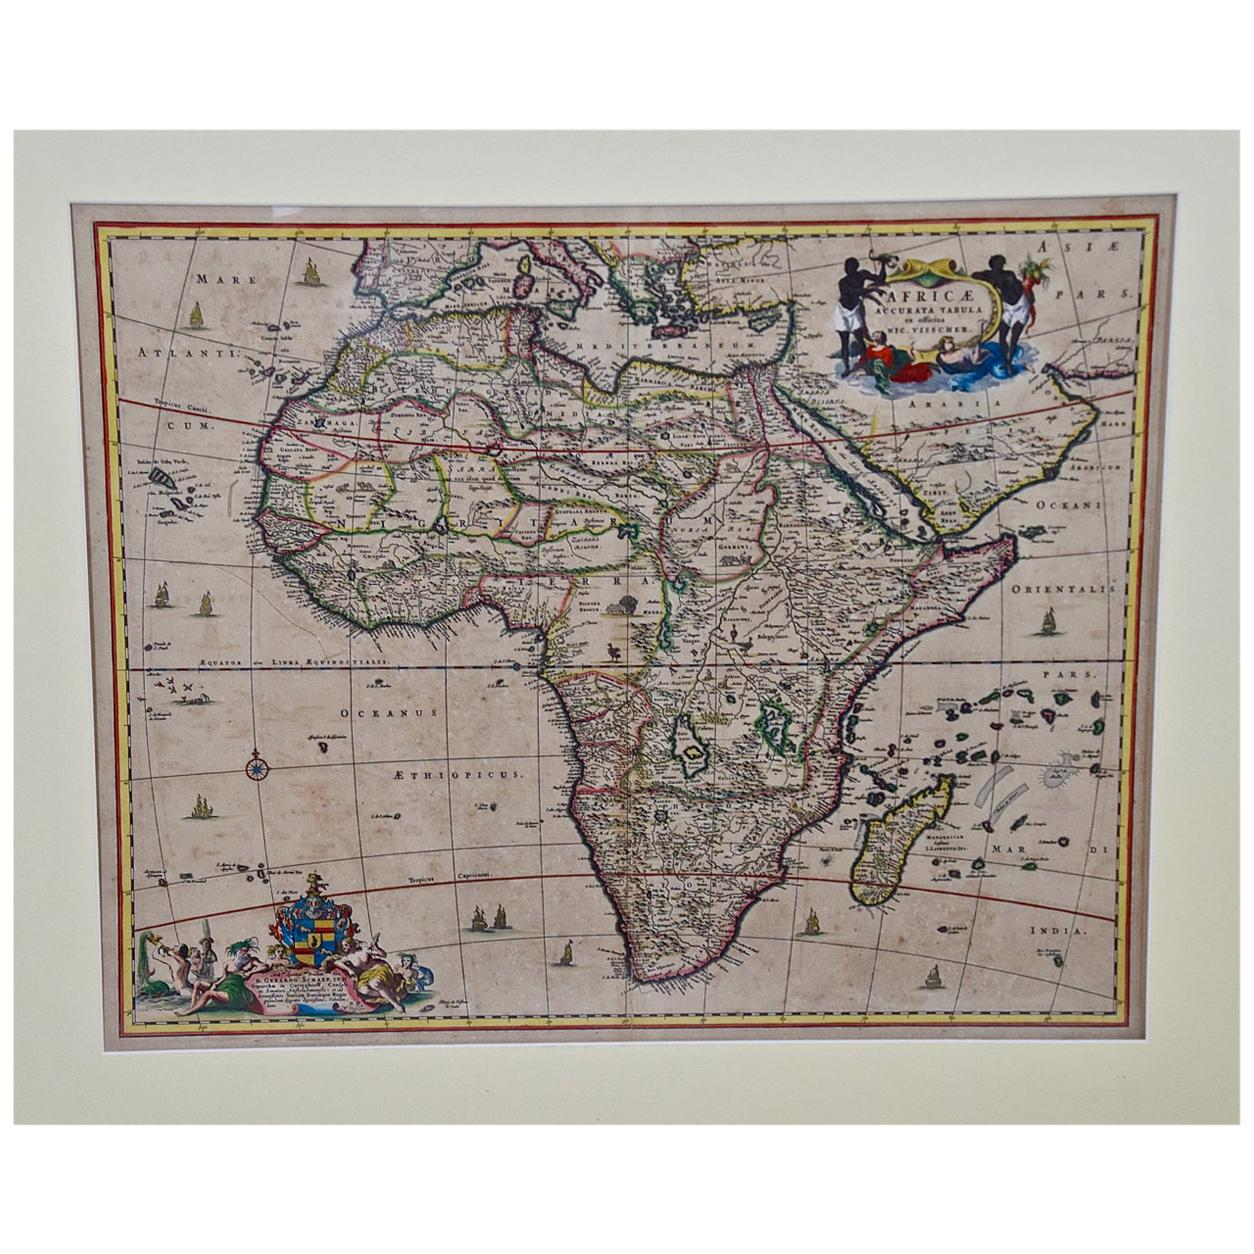 """""""Africae Accurata"""", a Hand-Colored 17th Century Map of Africa by Visscher"""